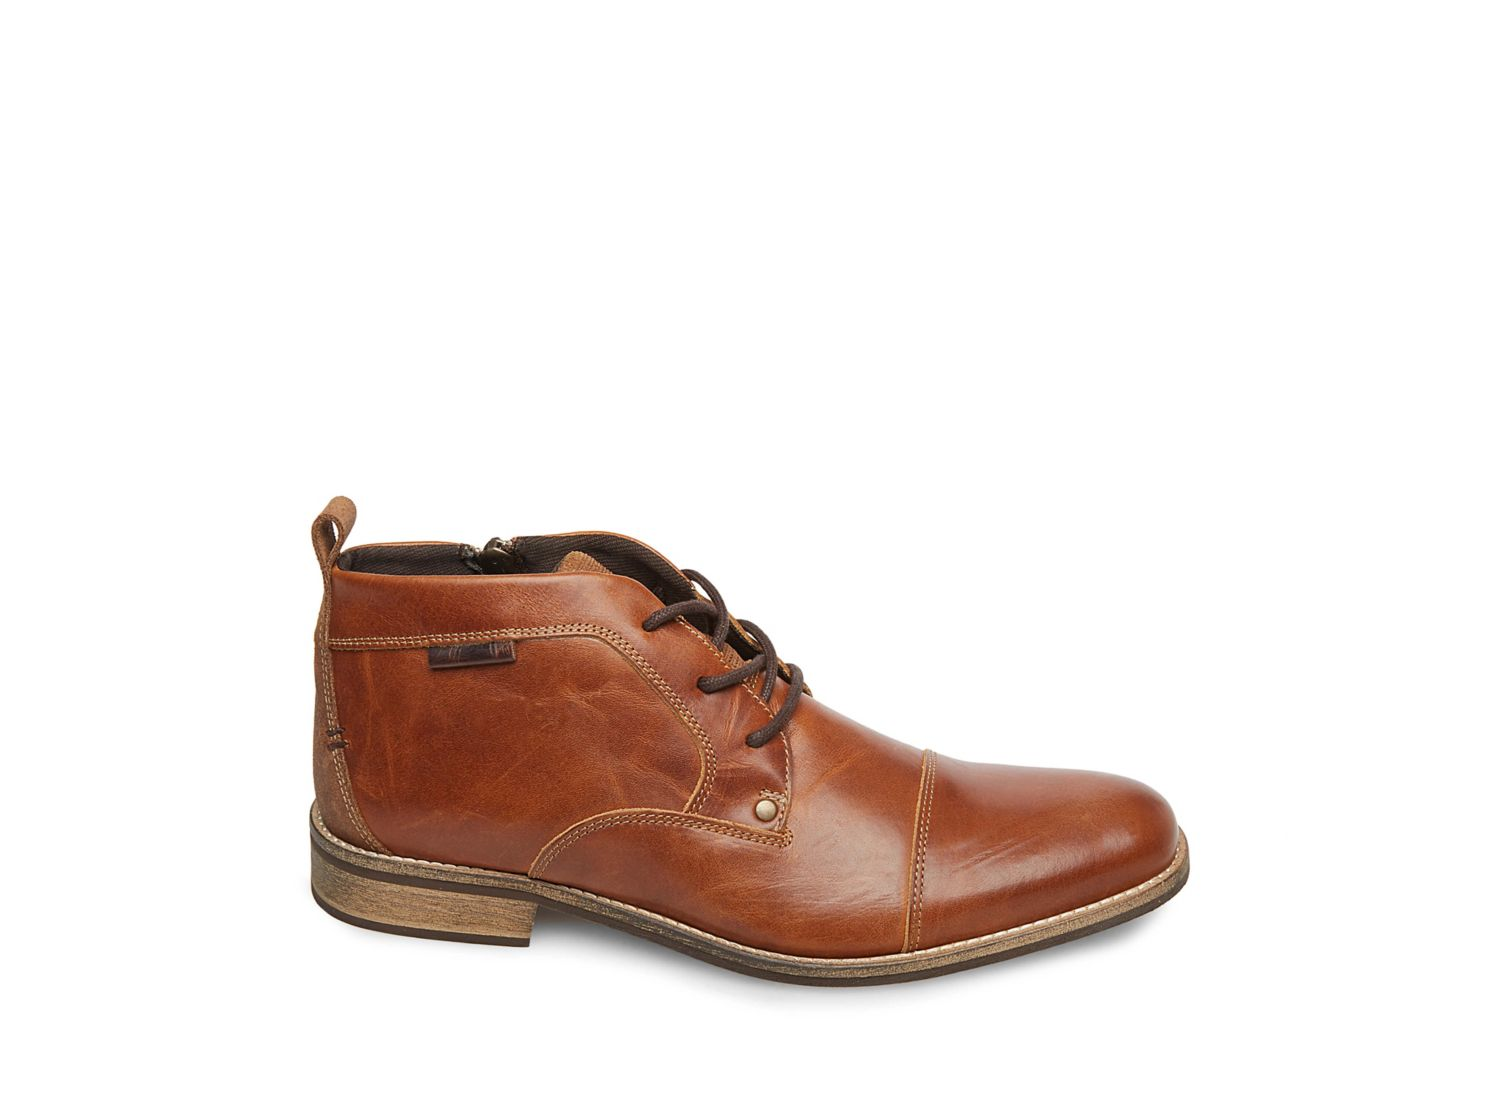 KIPP COGNAC LEATHER - Steve Madden